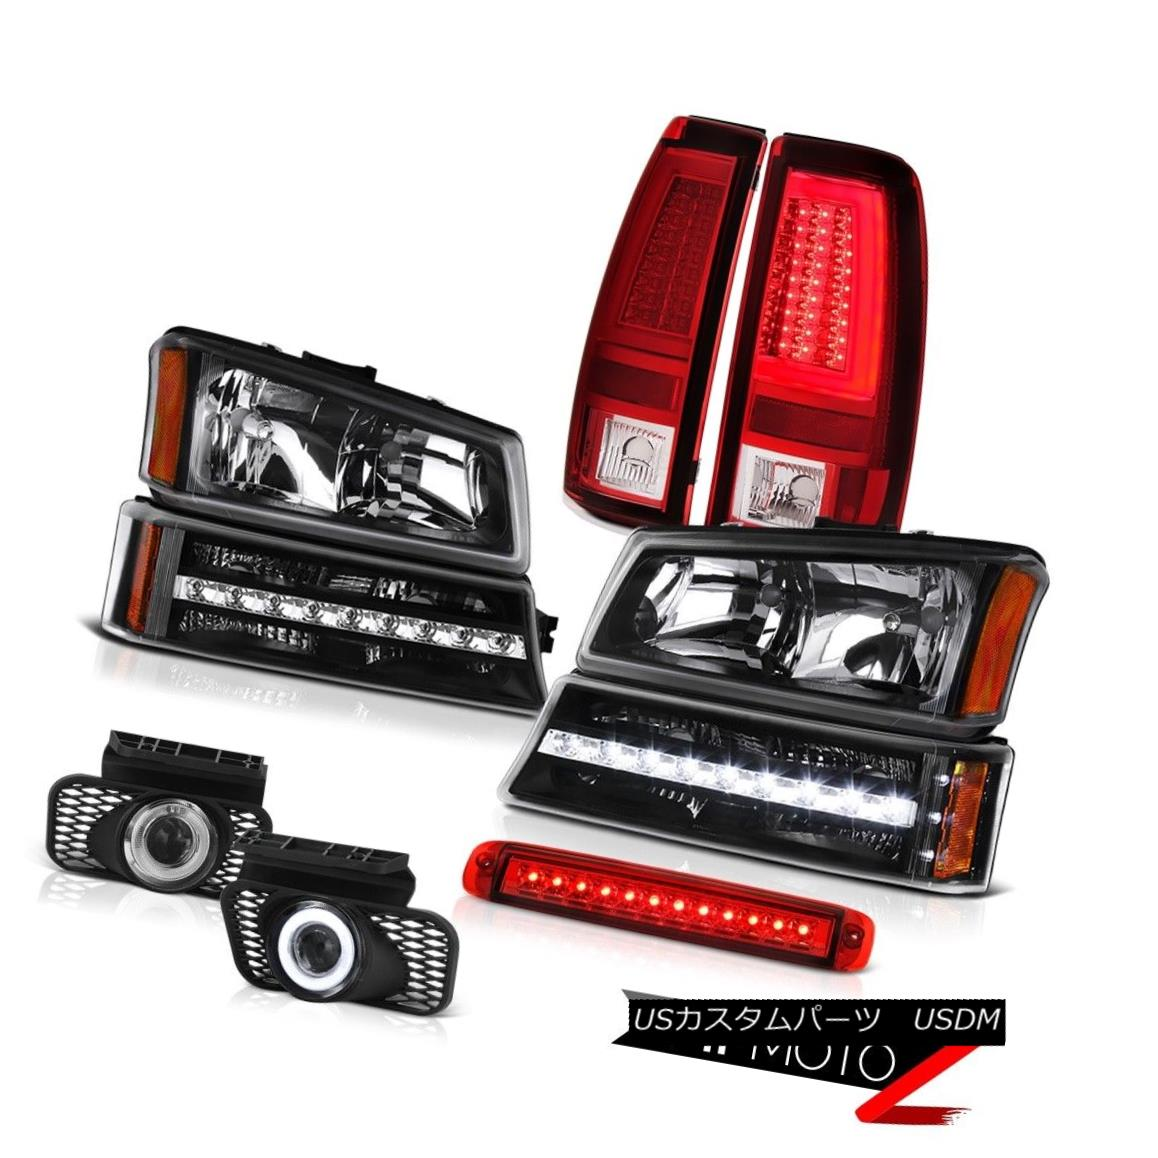 テールライト 03-06 Silverado Tail Lamps Roof Cab Light Headlamps Fog Bumper Lamp